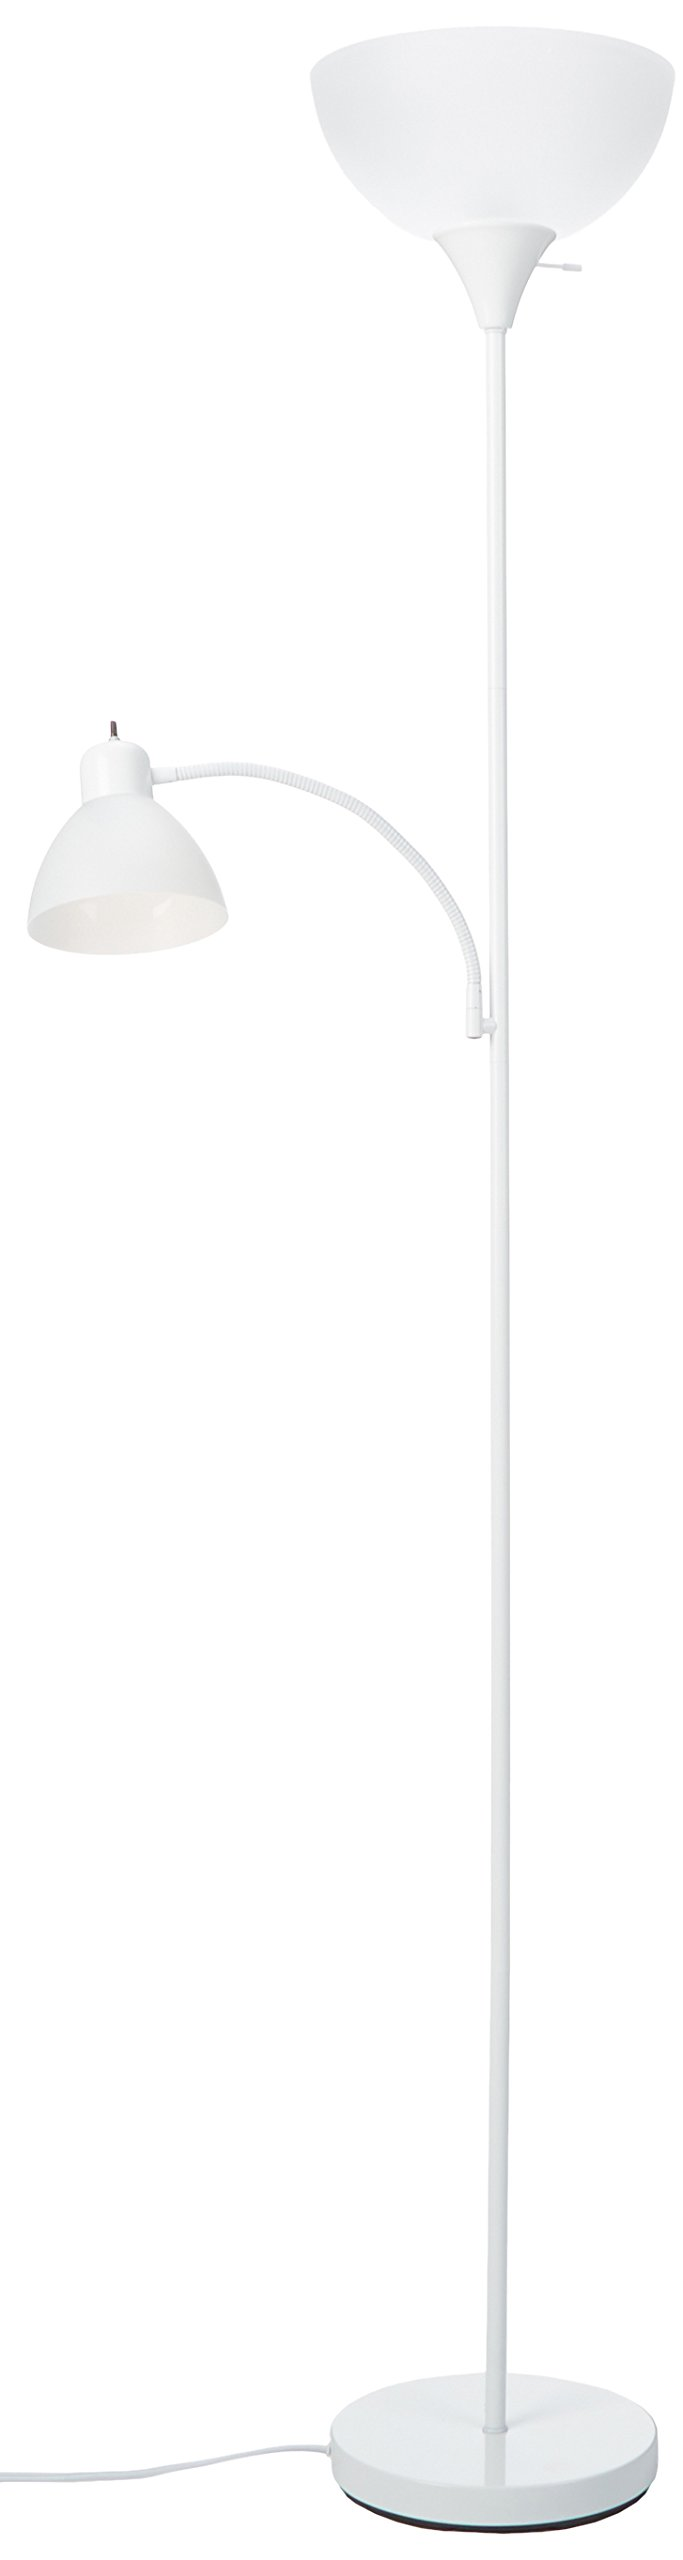 Park Madison Lighting PMF-9170-30 72-Inch Tall 150-Watt Torchiere Floor Lamp with Adjustable Reading Side Arm Lamp, White Finish with Frosted Shade